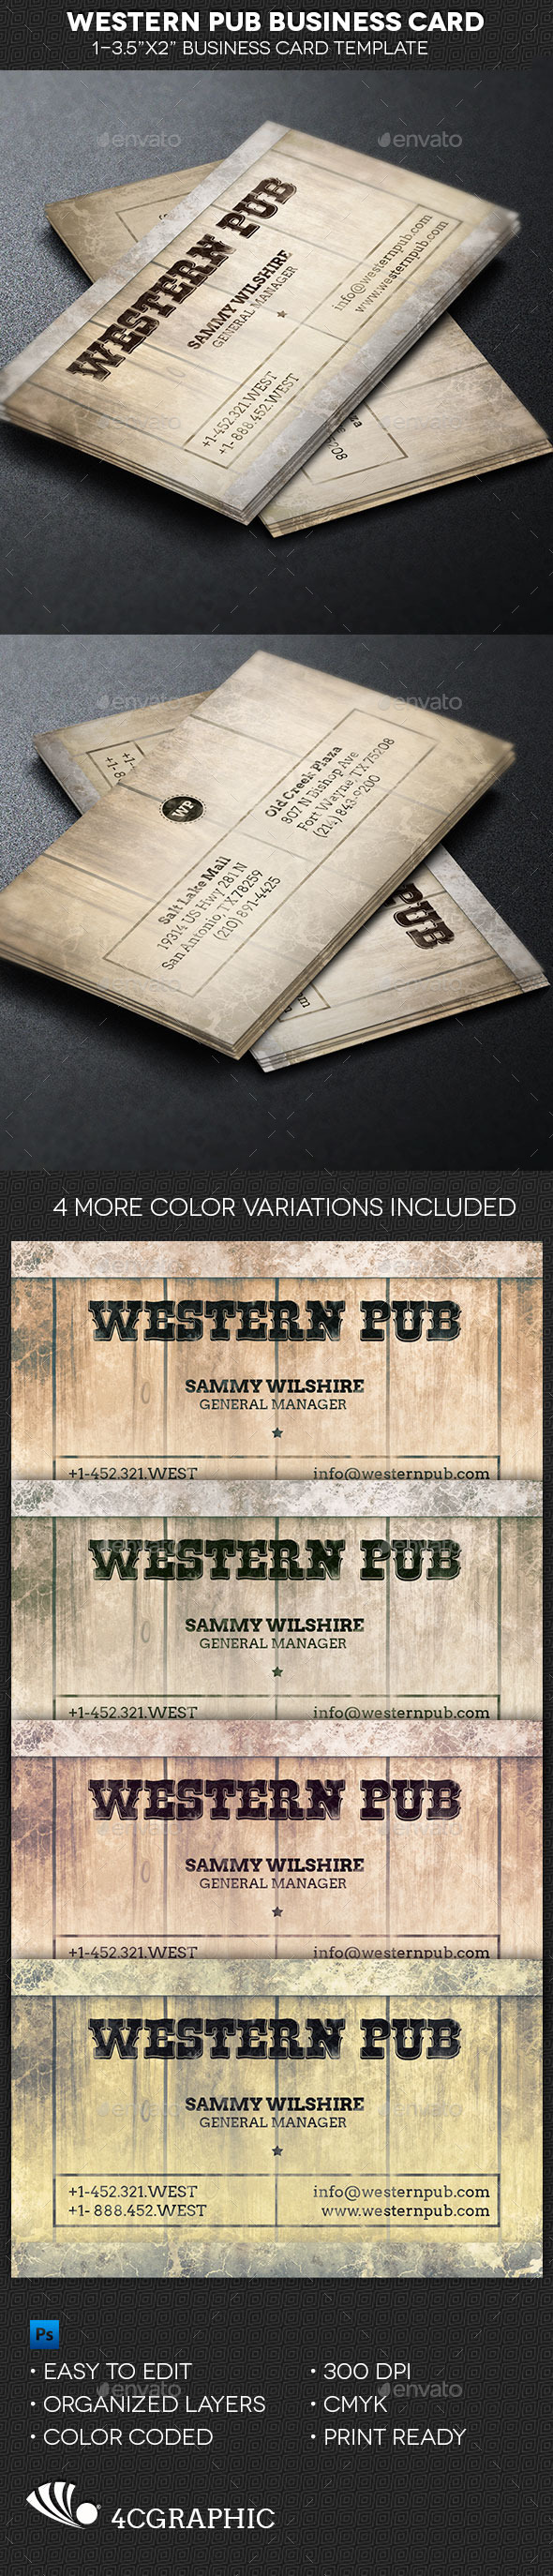 Western Pub Business Card Template - Industry Specific Business Cards